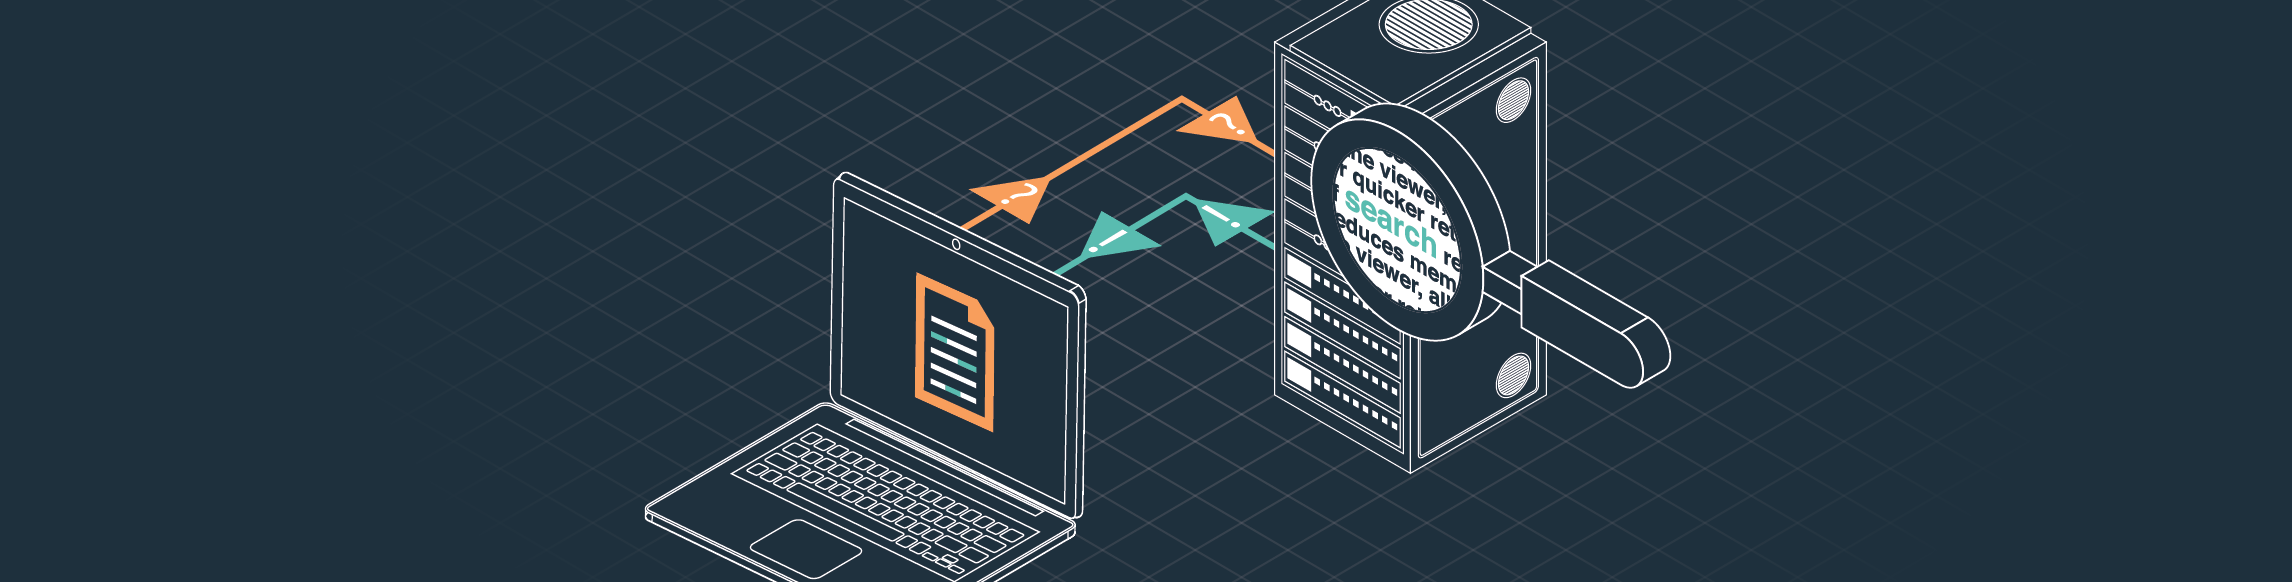 How to Optimize PrizmDoc for Large Document Viewing and Server-Side